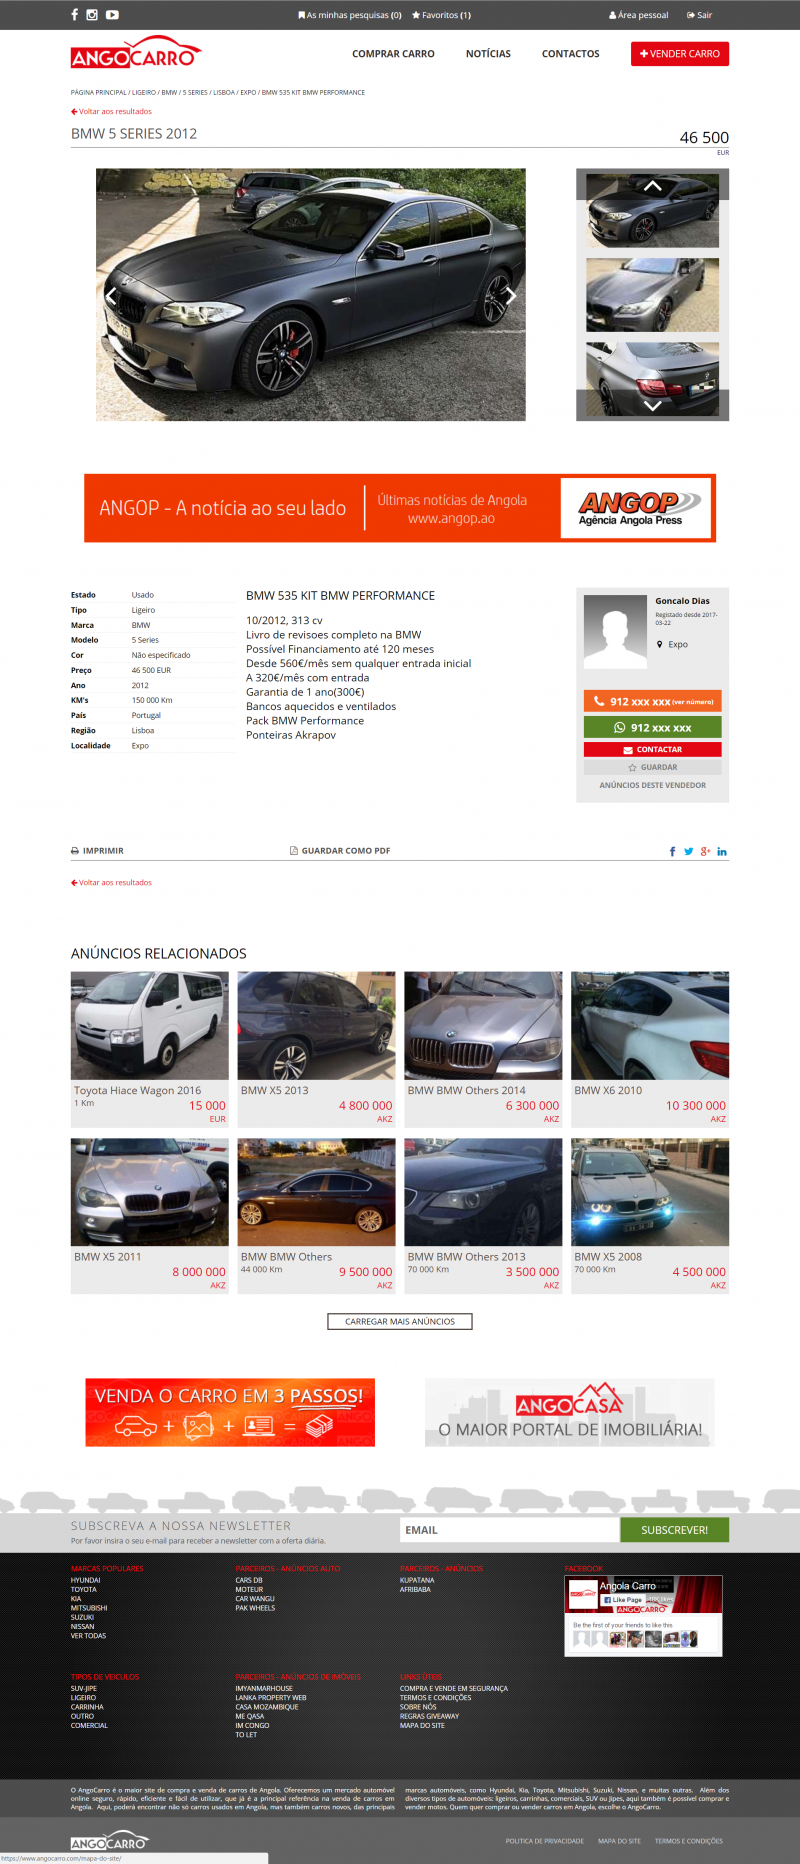 73758-angocarro-voi-site3.png